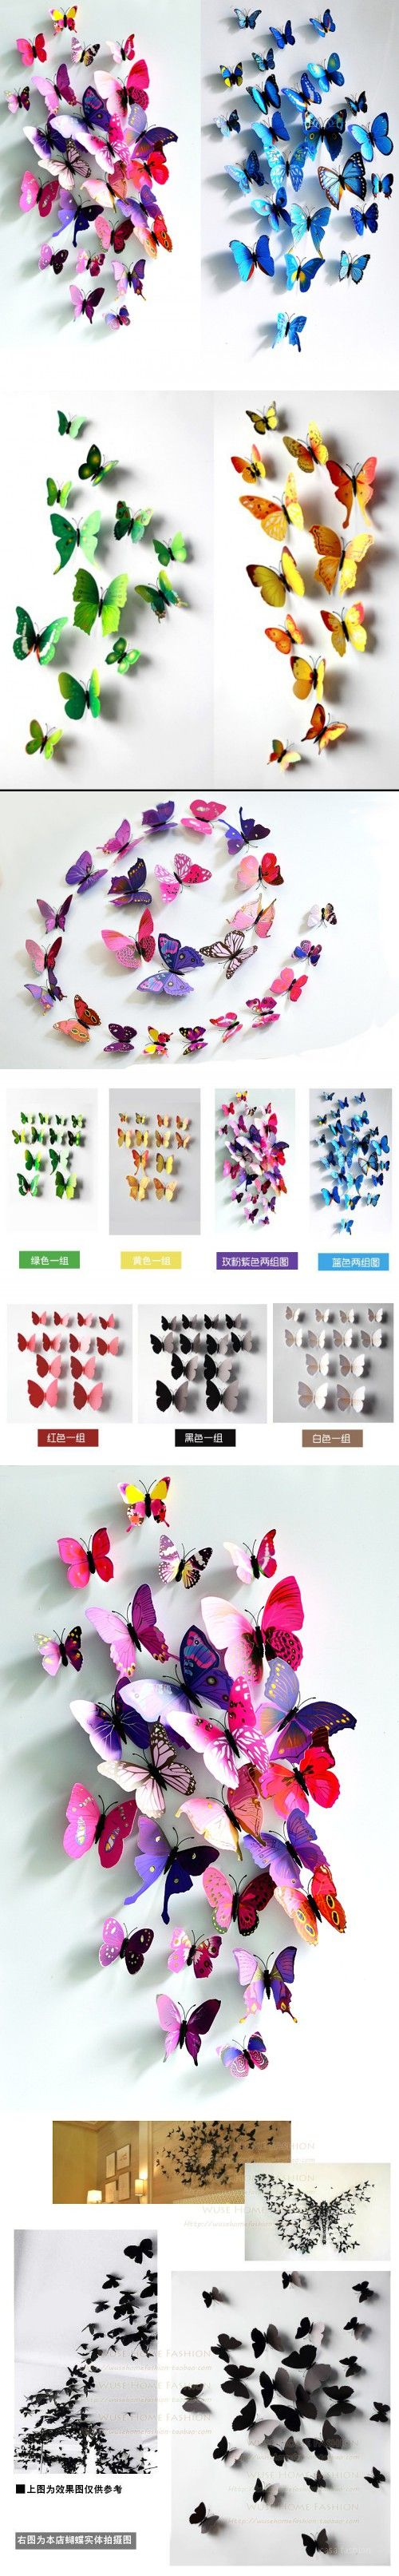 3D three-dimensional wall stickers butterfly wall stickers size 12 suit wedding curtain window display stickers Home Decoration